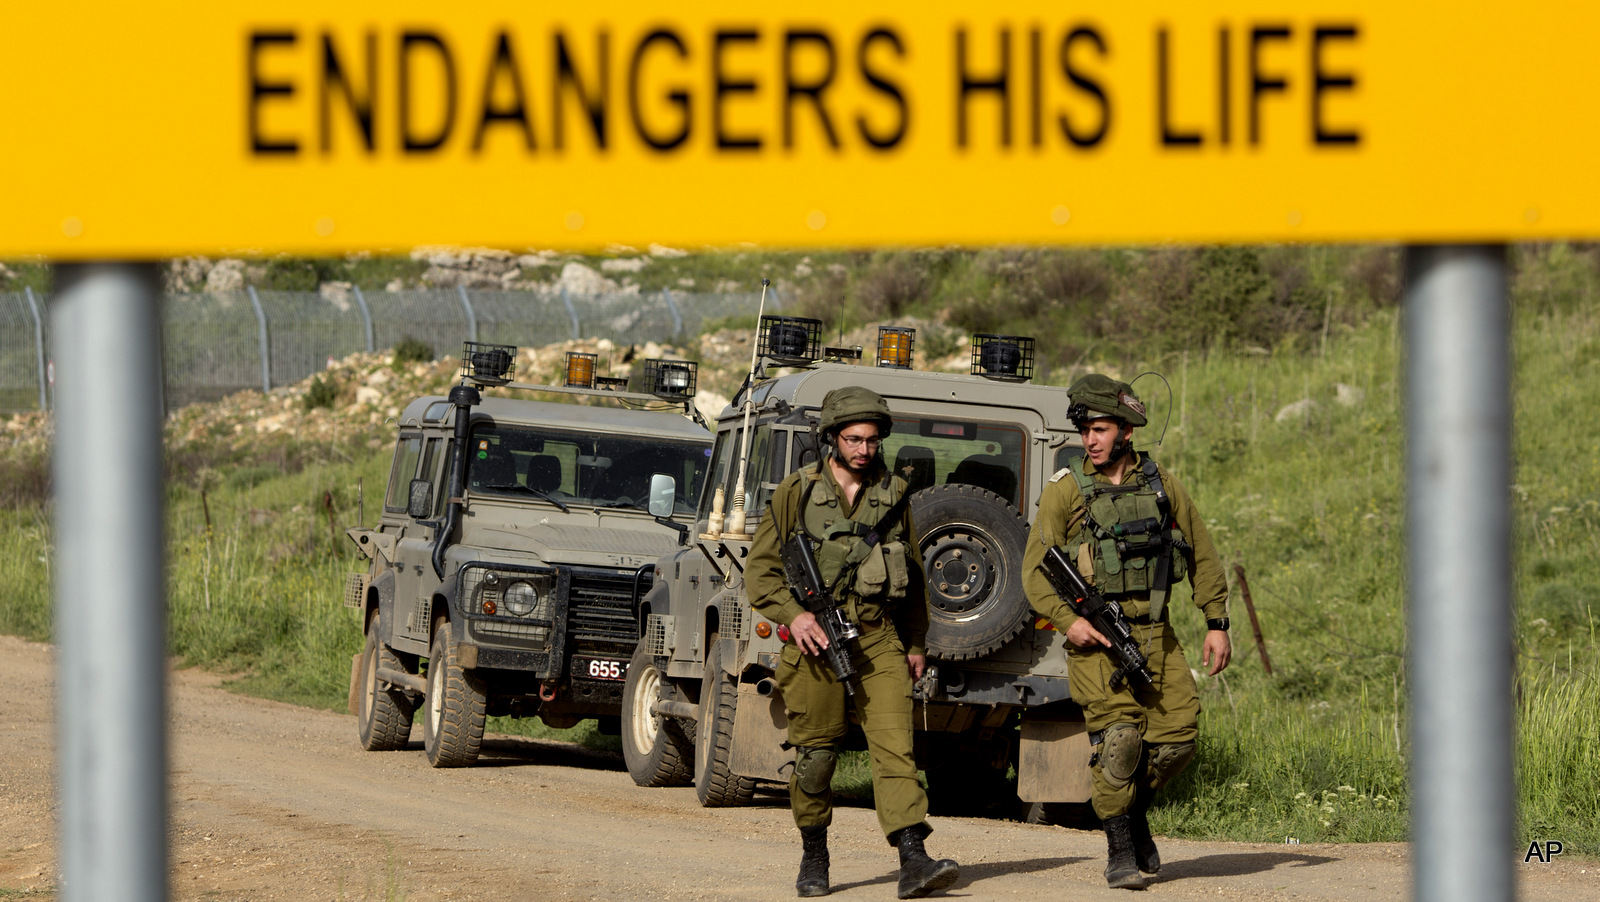 Israeli soldiers walks near the border with Syria near the site of a Sunday Israeli airstrike, in the Israeli controlled Golan Heights, Monday, April 27, 2015